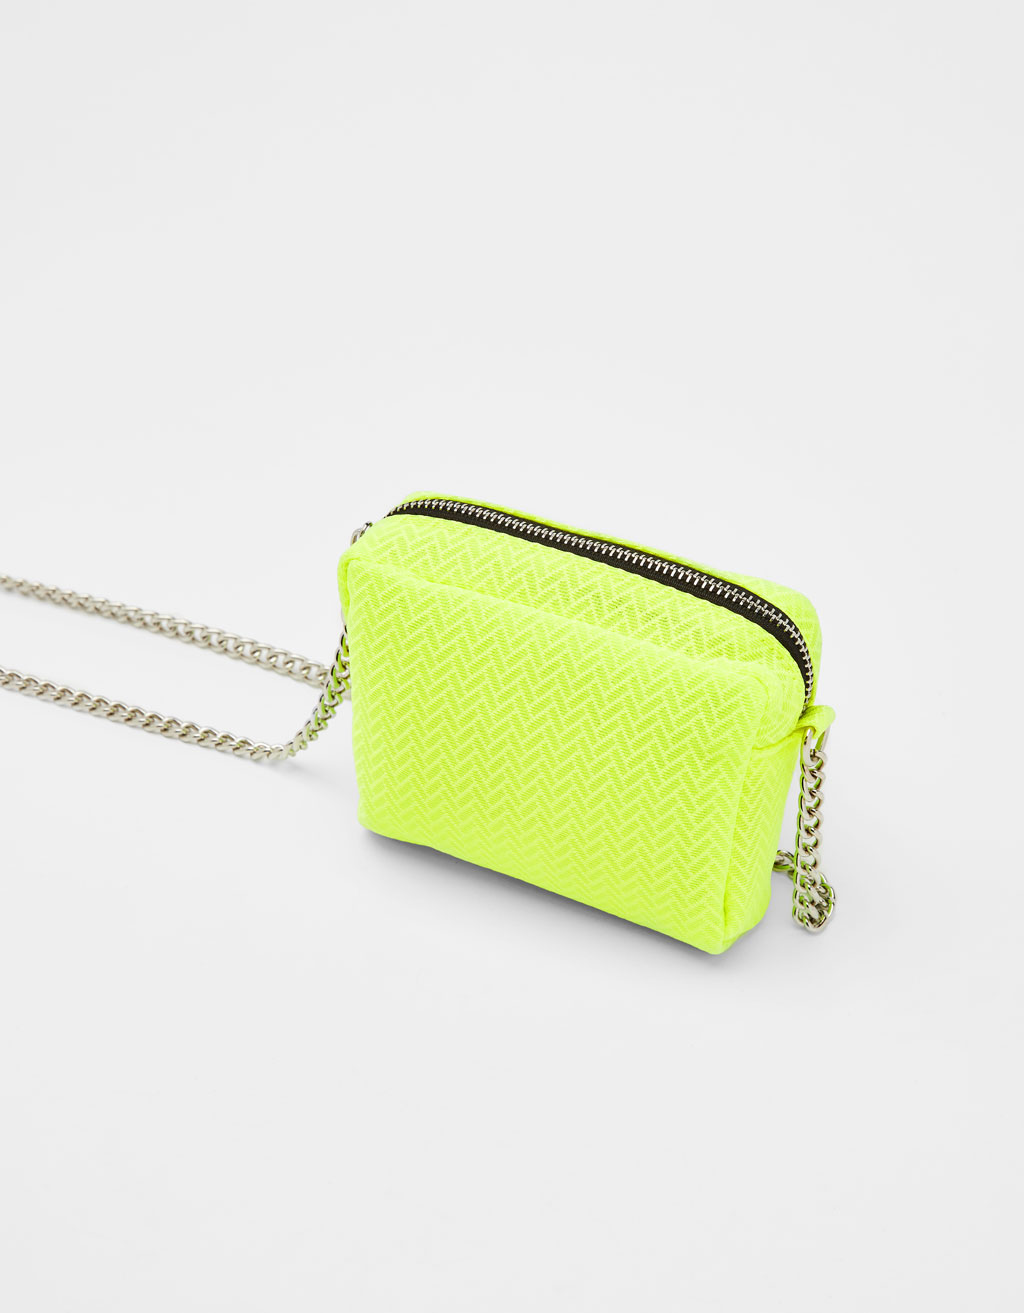 Neon bag with chain strap